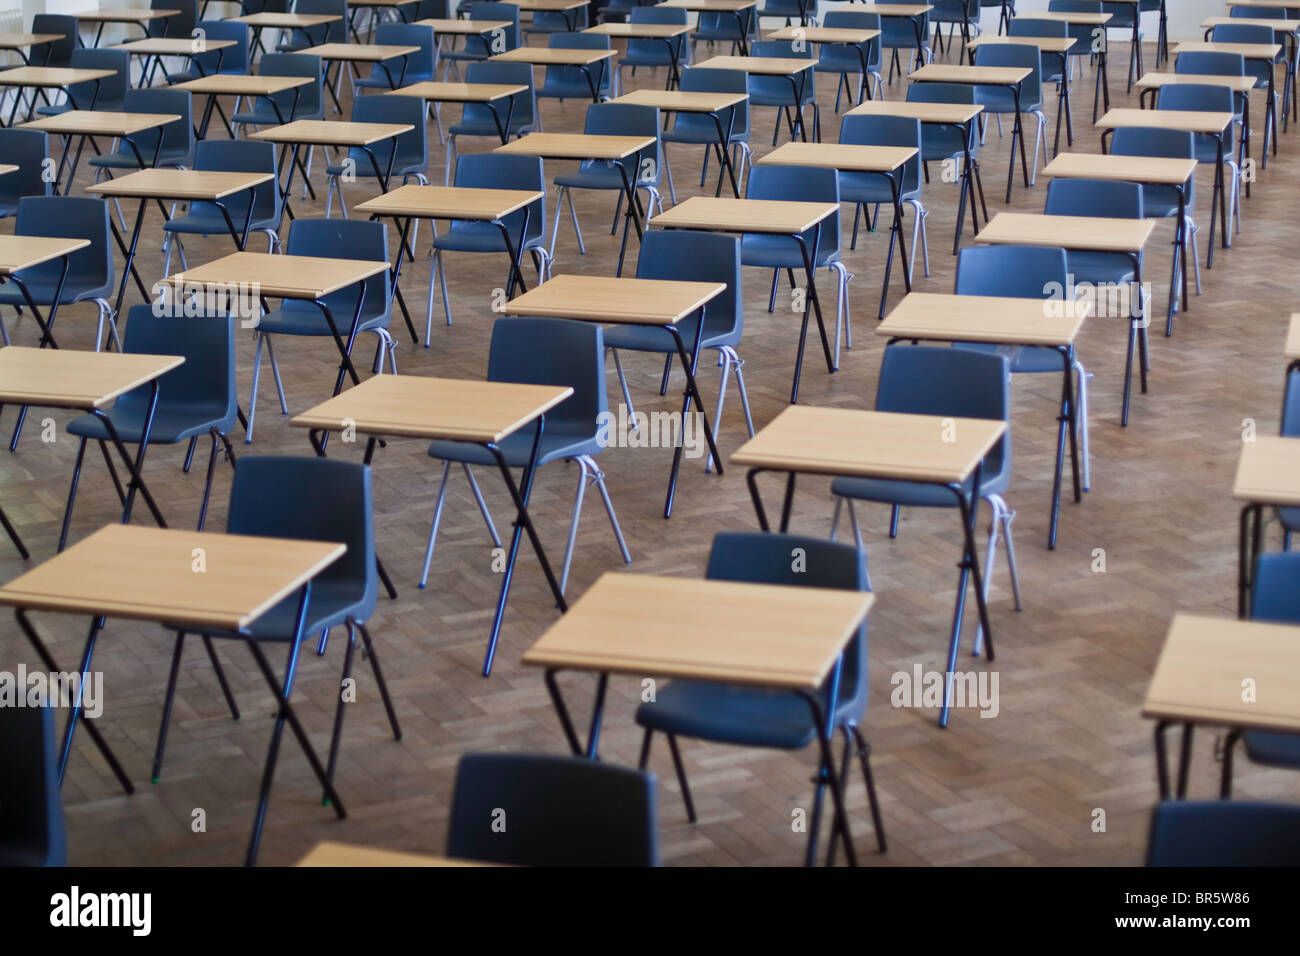 Desks and chairs set out for exams in a school hall in the United Kingdom. - Stock Image